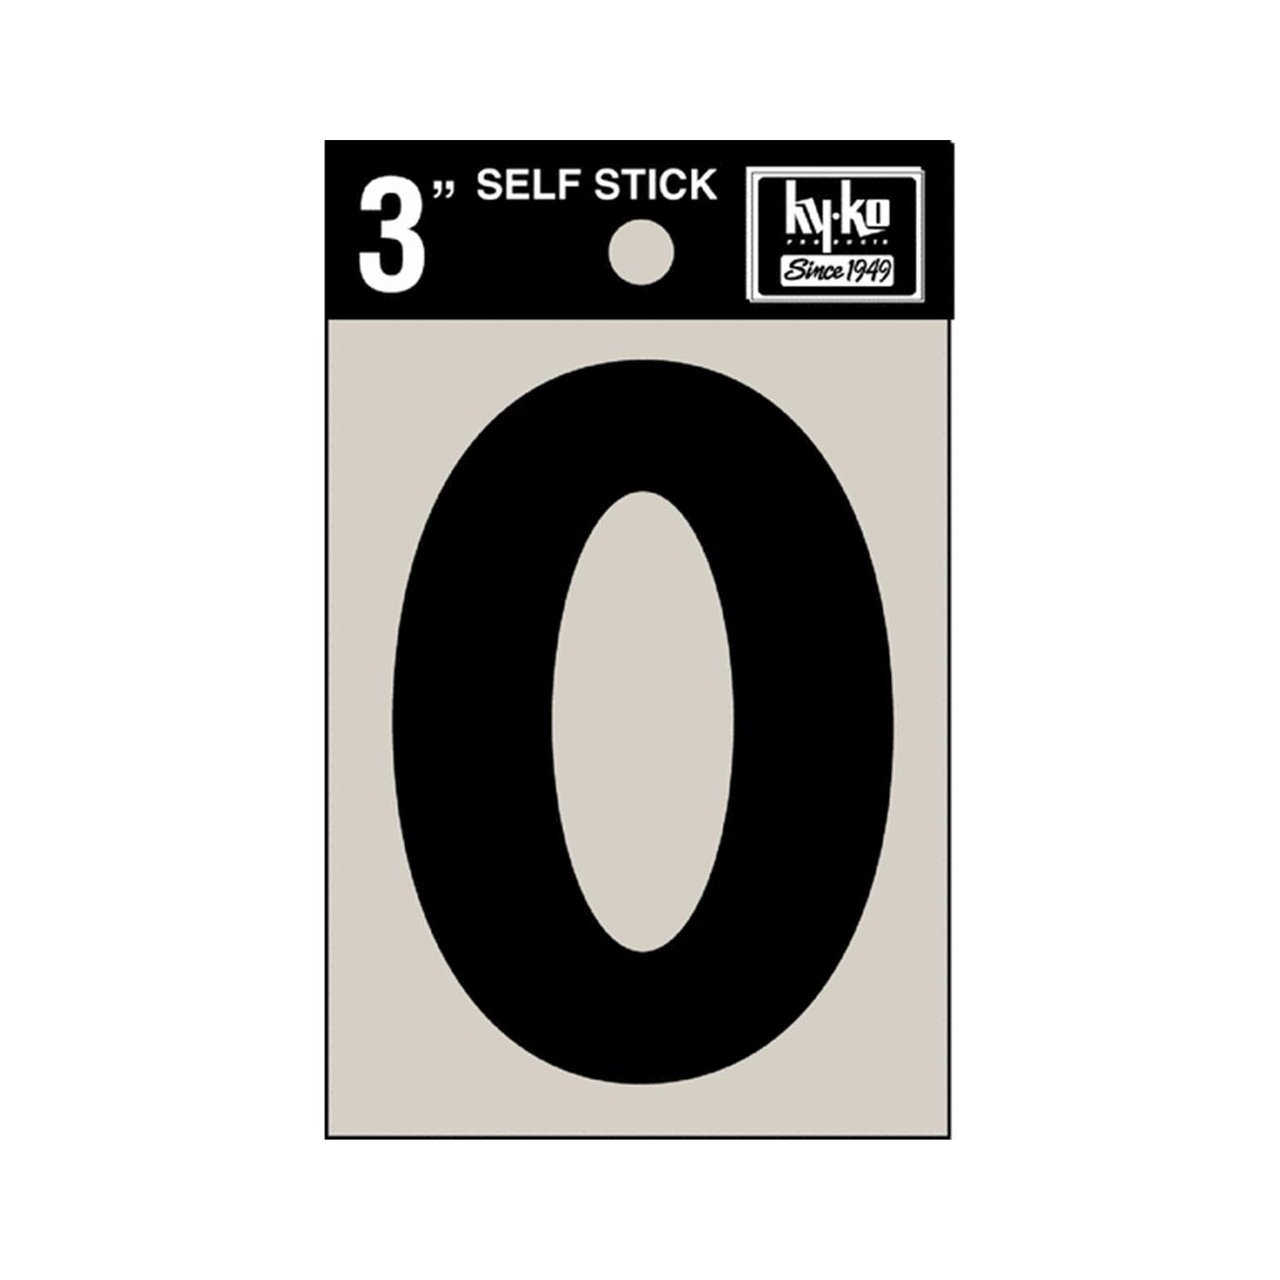 "Hy-Ko 30410 Self-Stick Vinyl Die-Cut Number 0 Sign, 3"", Black"